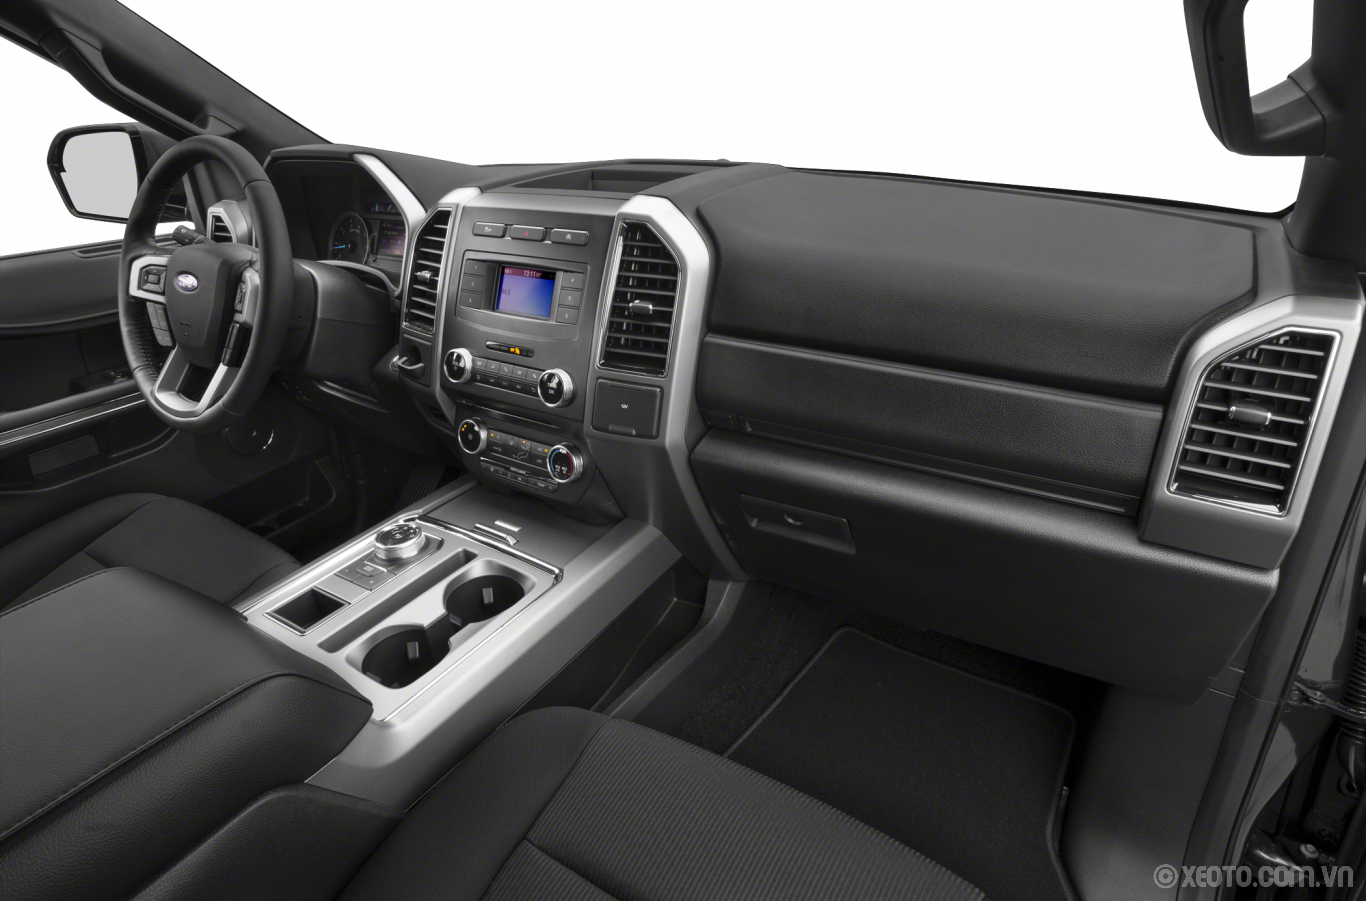 Ford Expedition 2020 hình ảnh nội thất Interior Profile